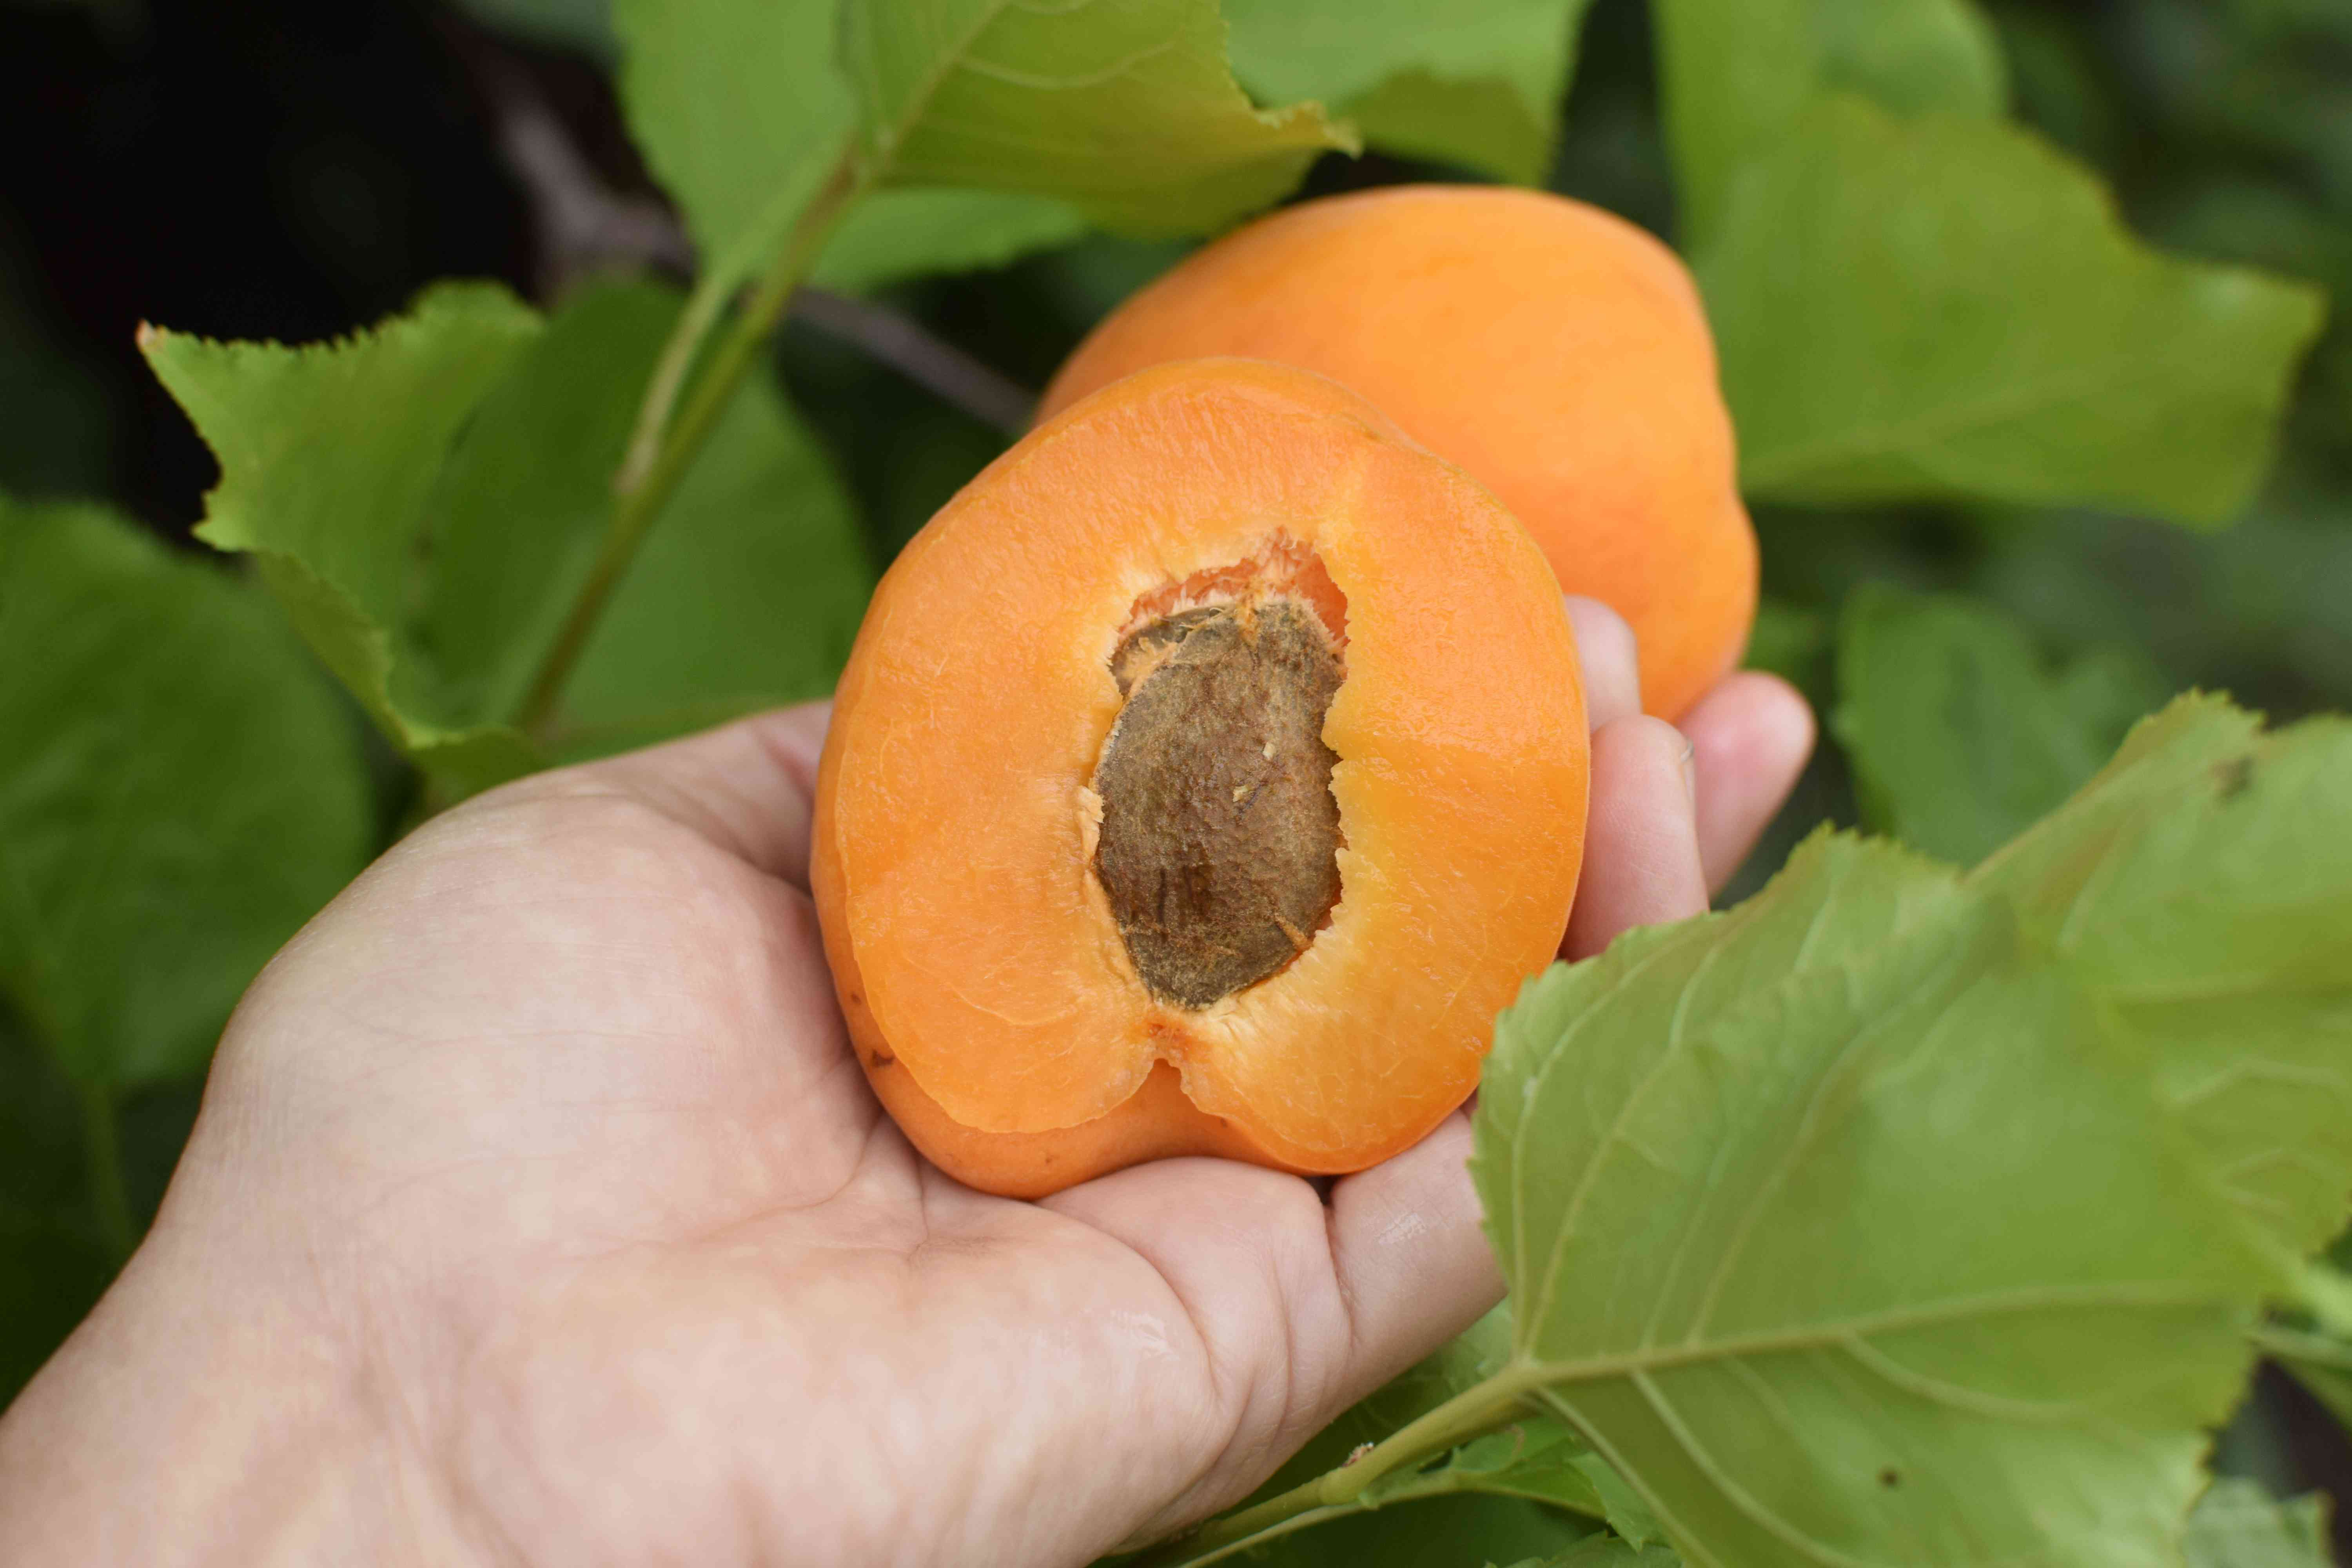 Orange apricot fruit held in hand with seed exposed